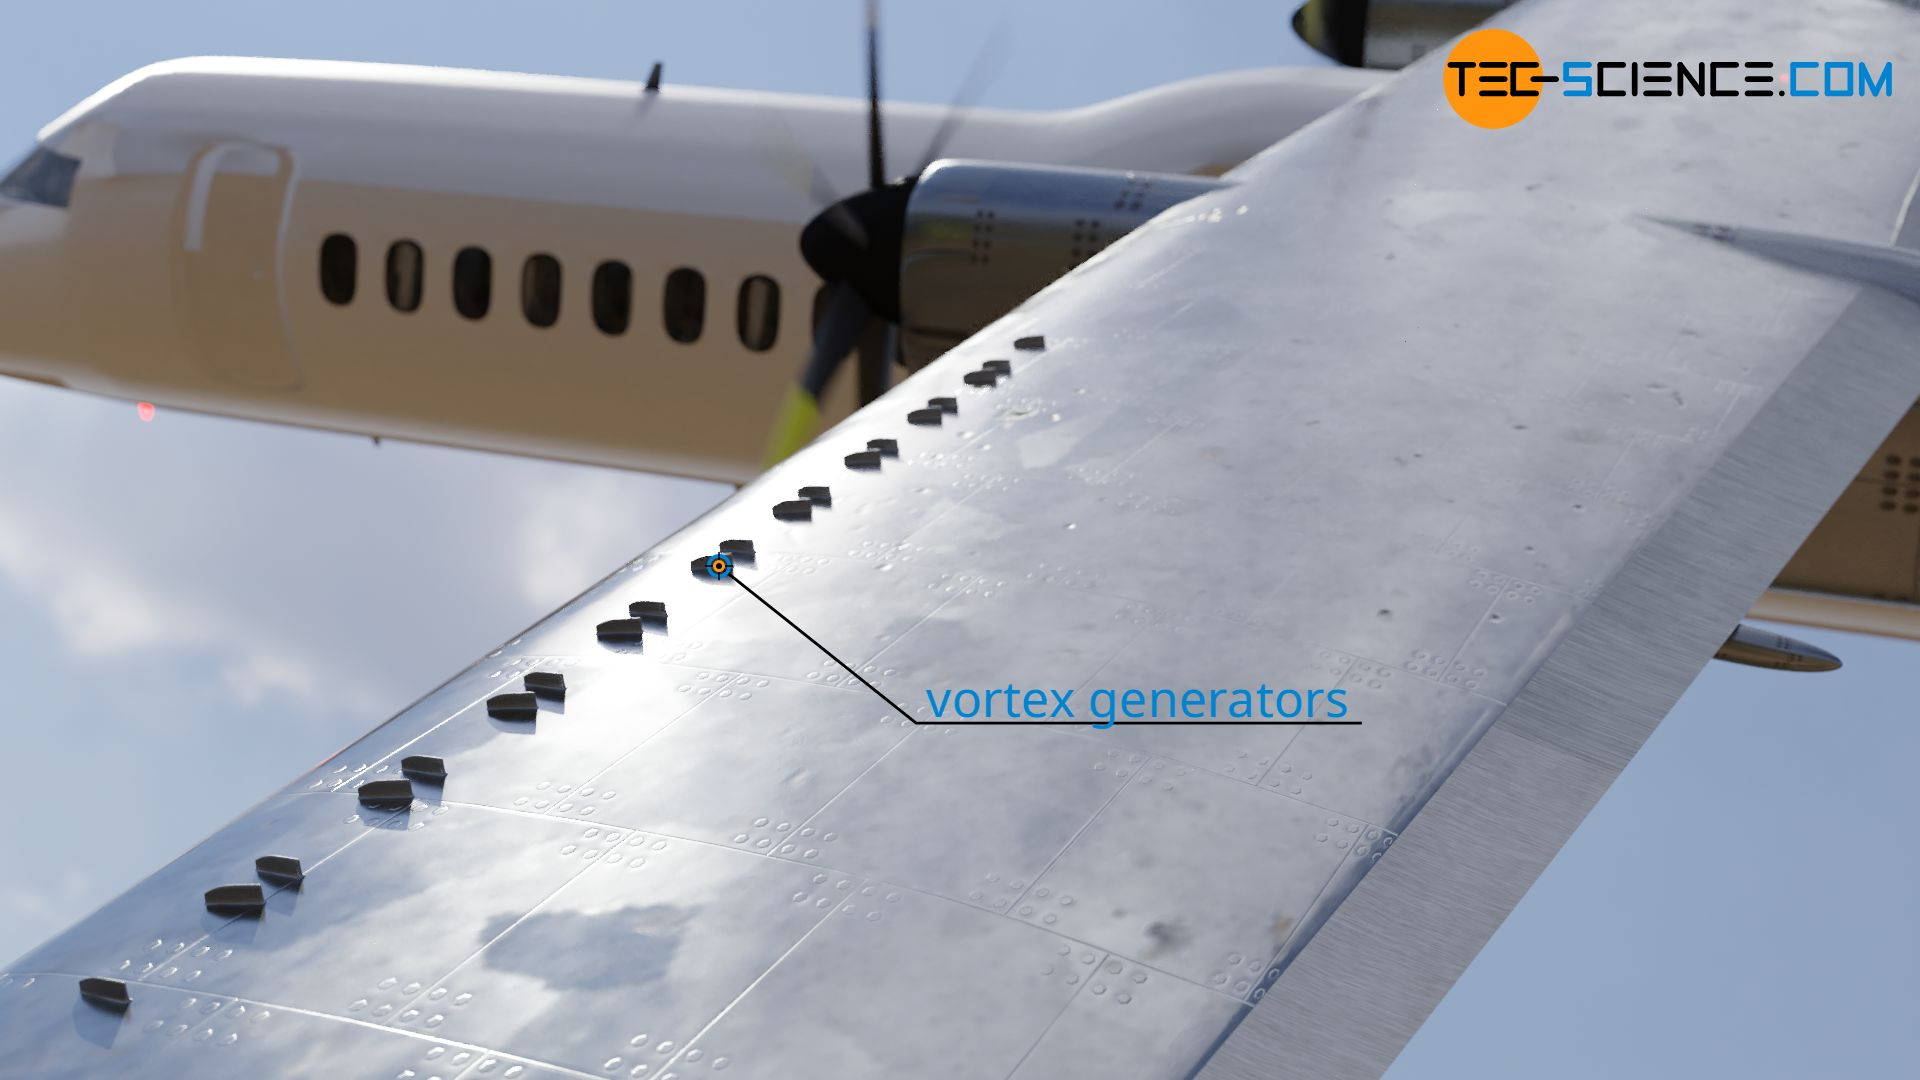 Turbulators (vertex generators) on the wing of an airplane to generate a turbulent flow around it